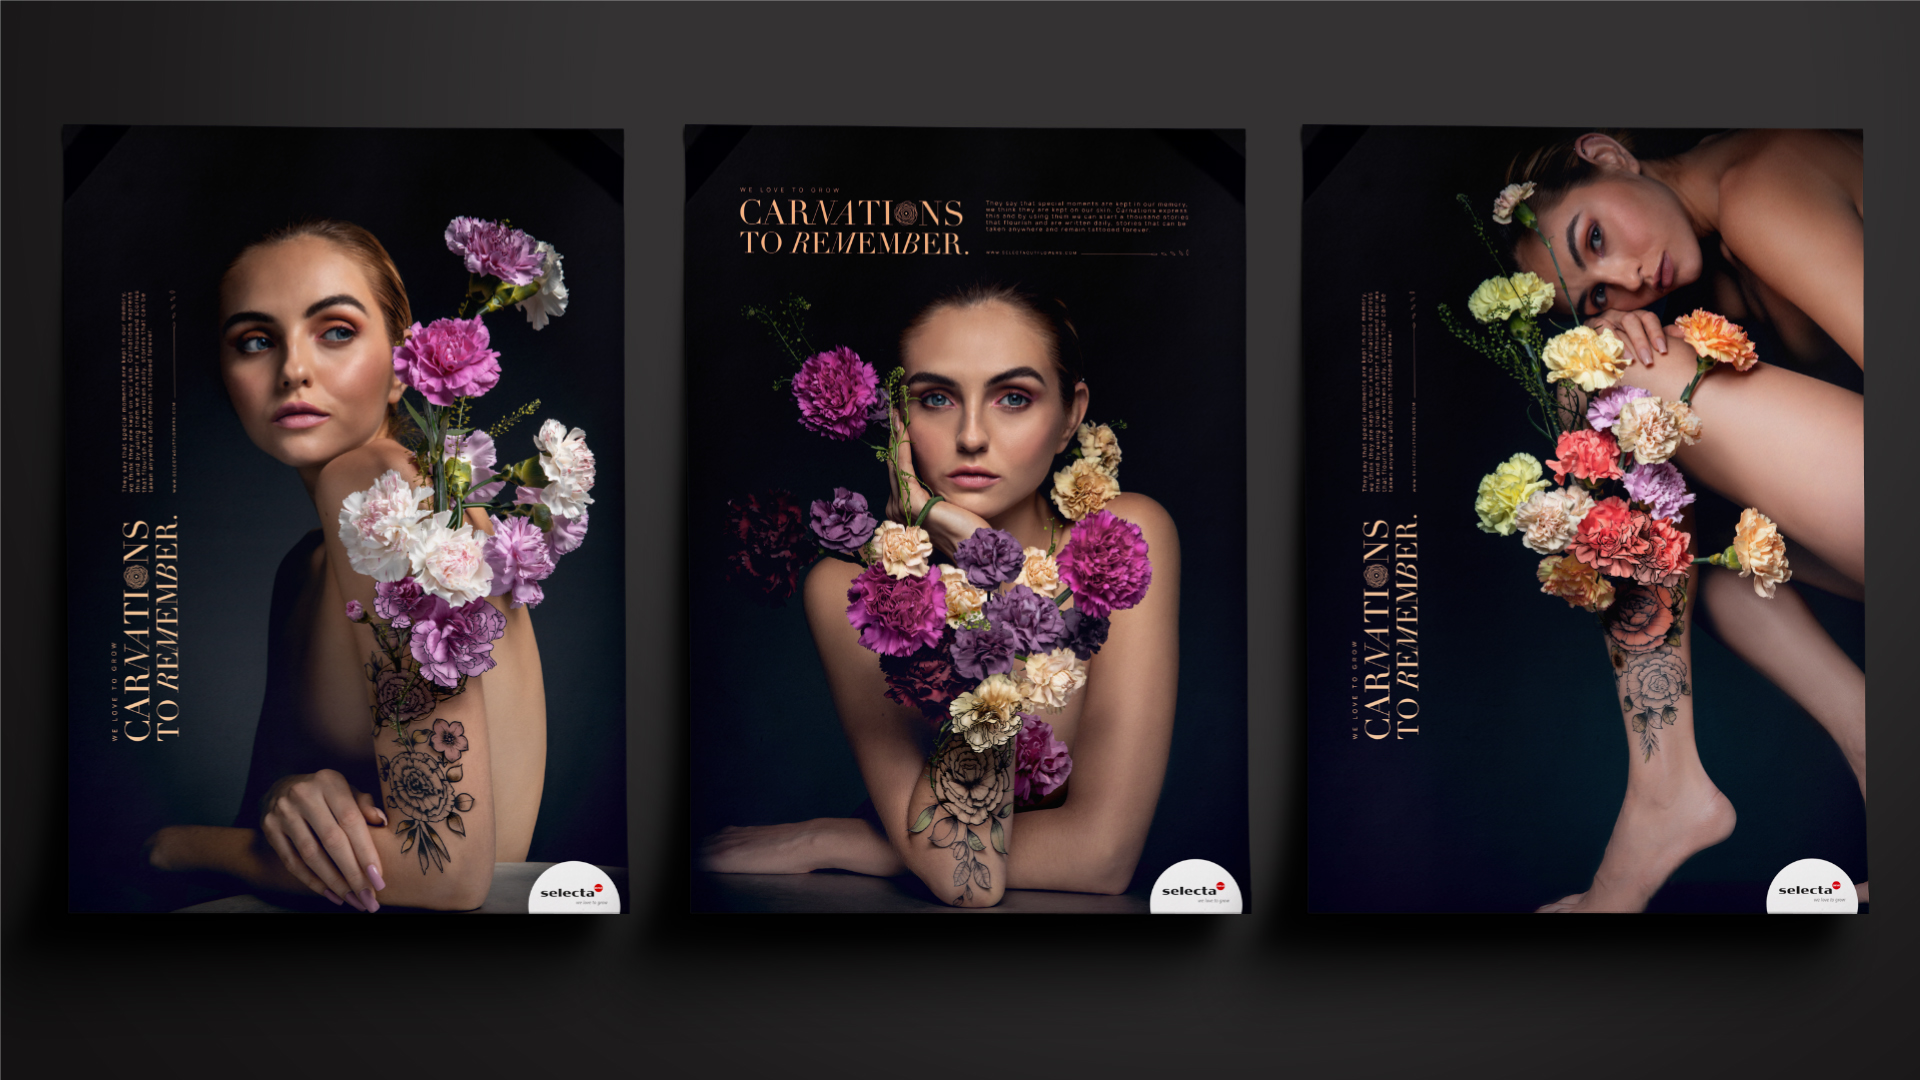 Carnations by Selecta